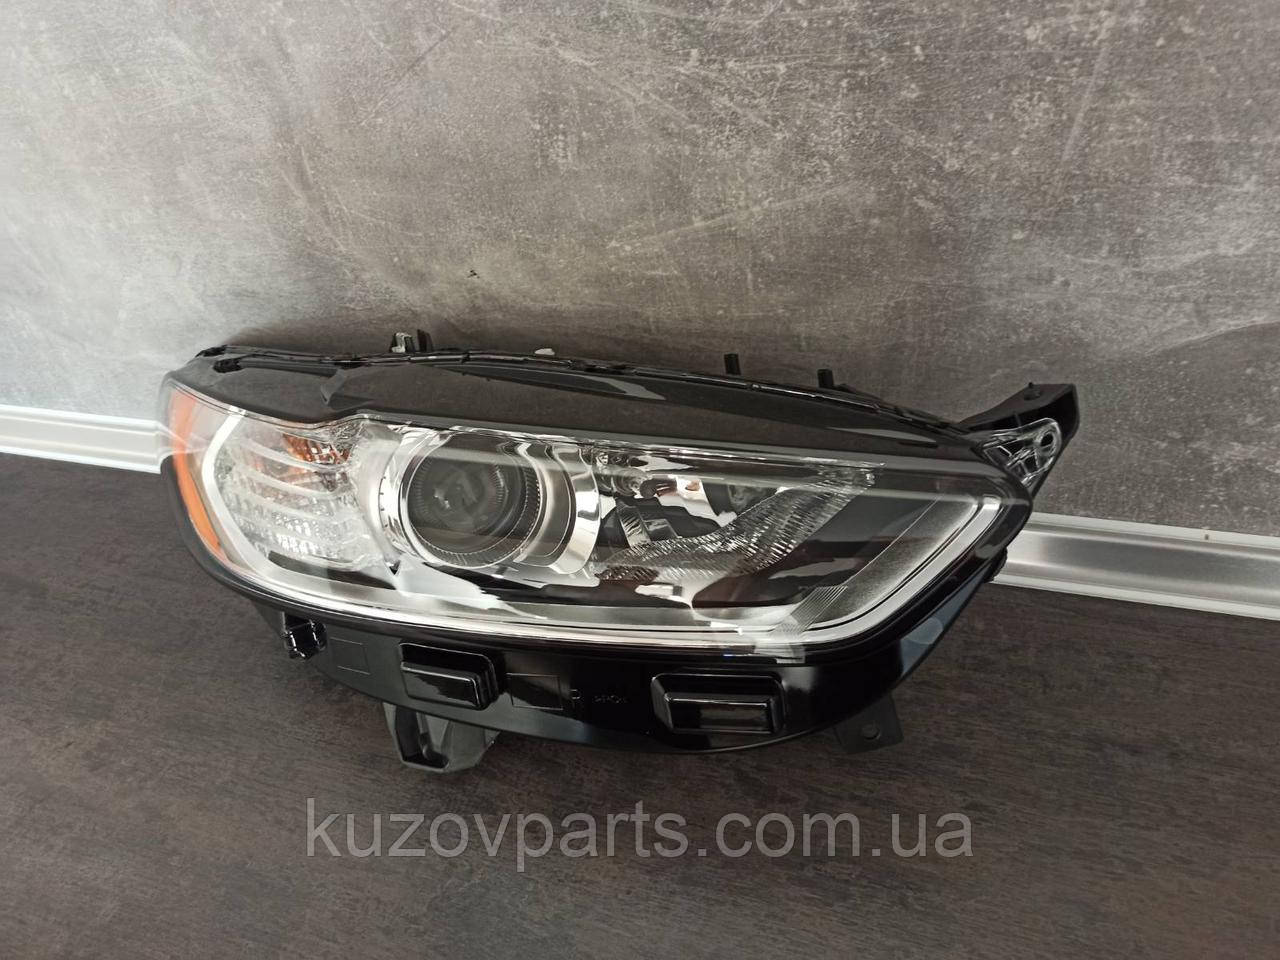 Фара Ford Fusion 2013 2014 2015 2016